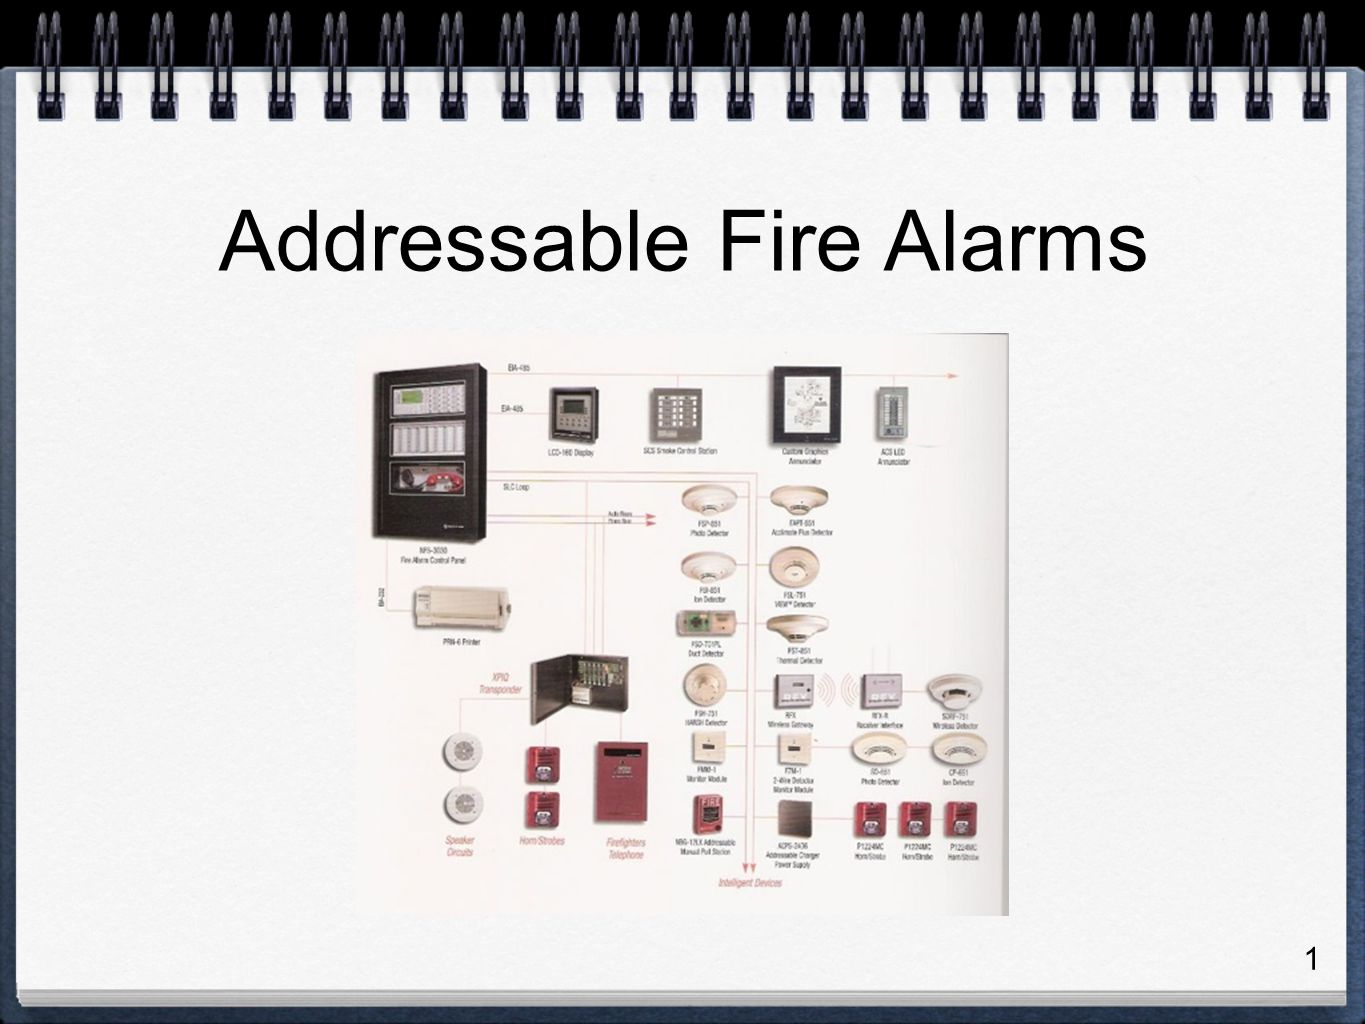 Addressable Fire Alarms - ppt download